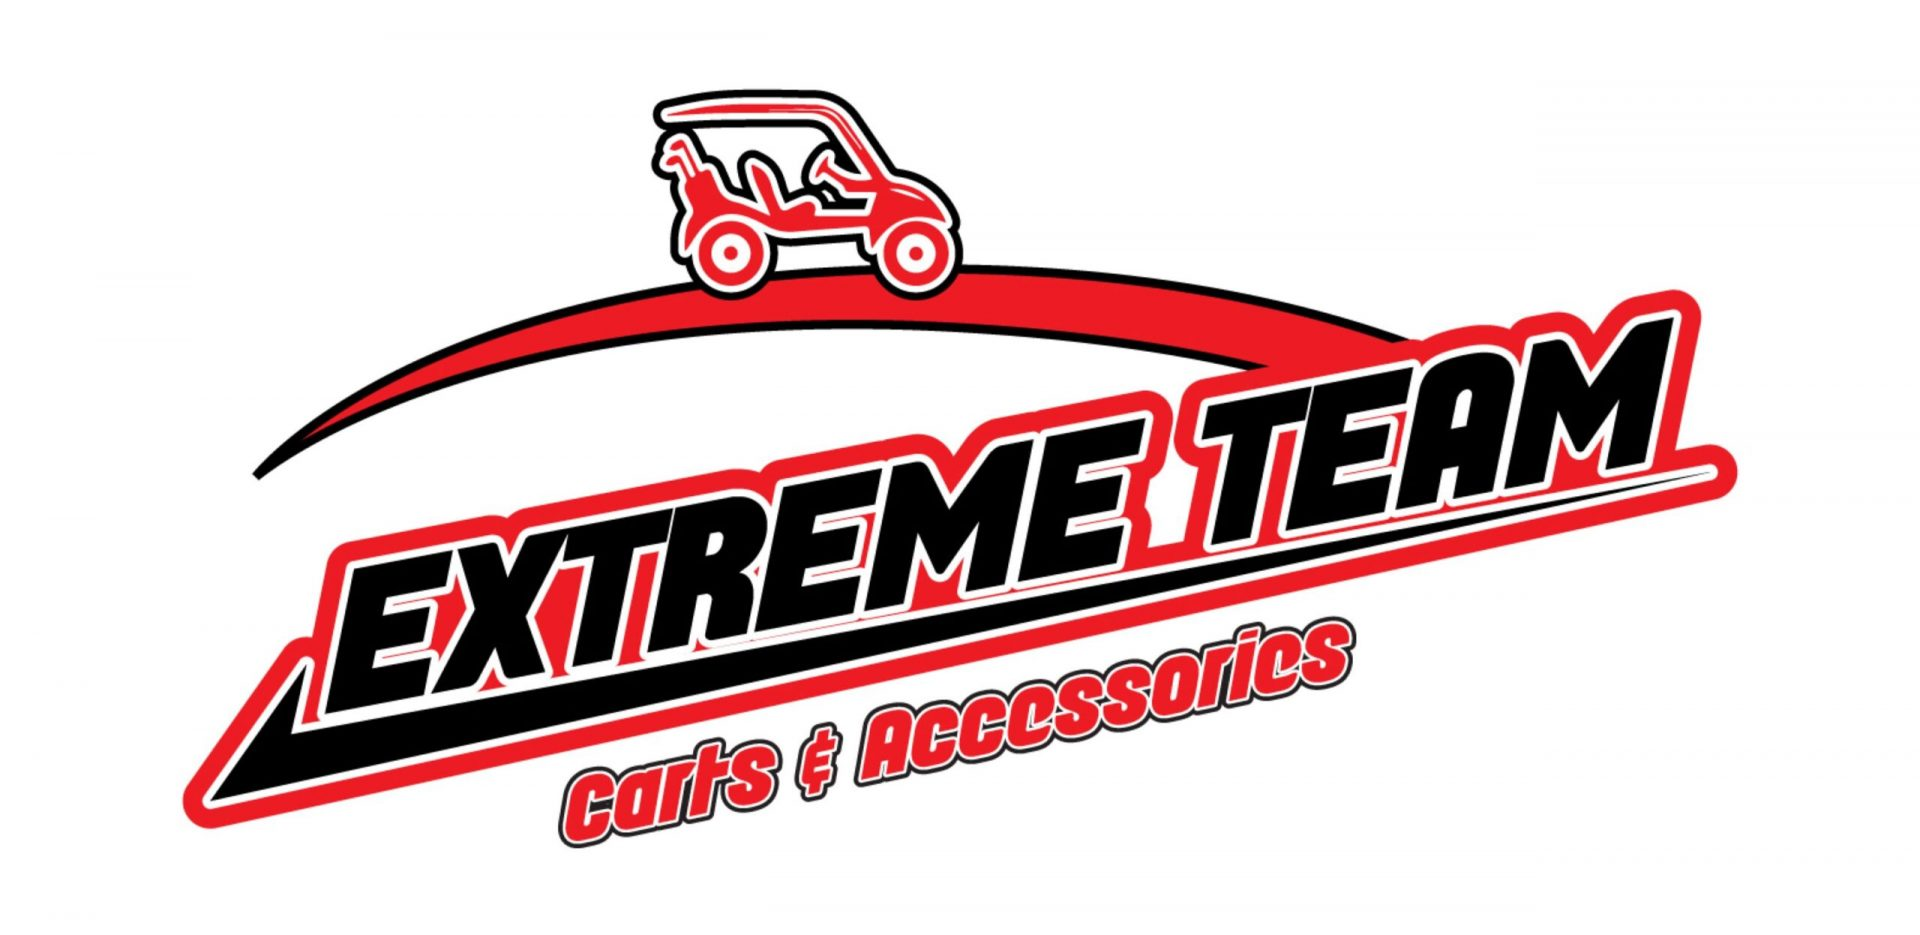 Extreme Team Carts & Accessories